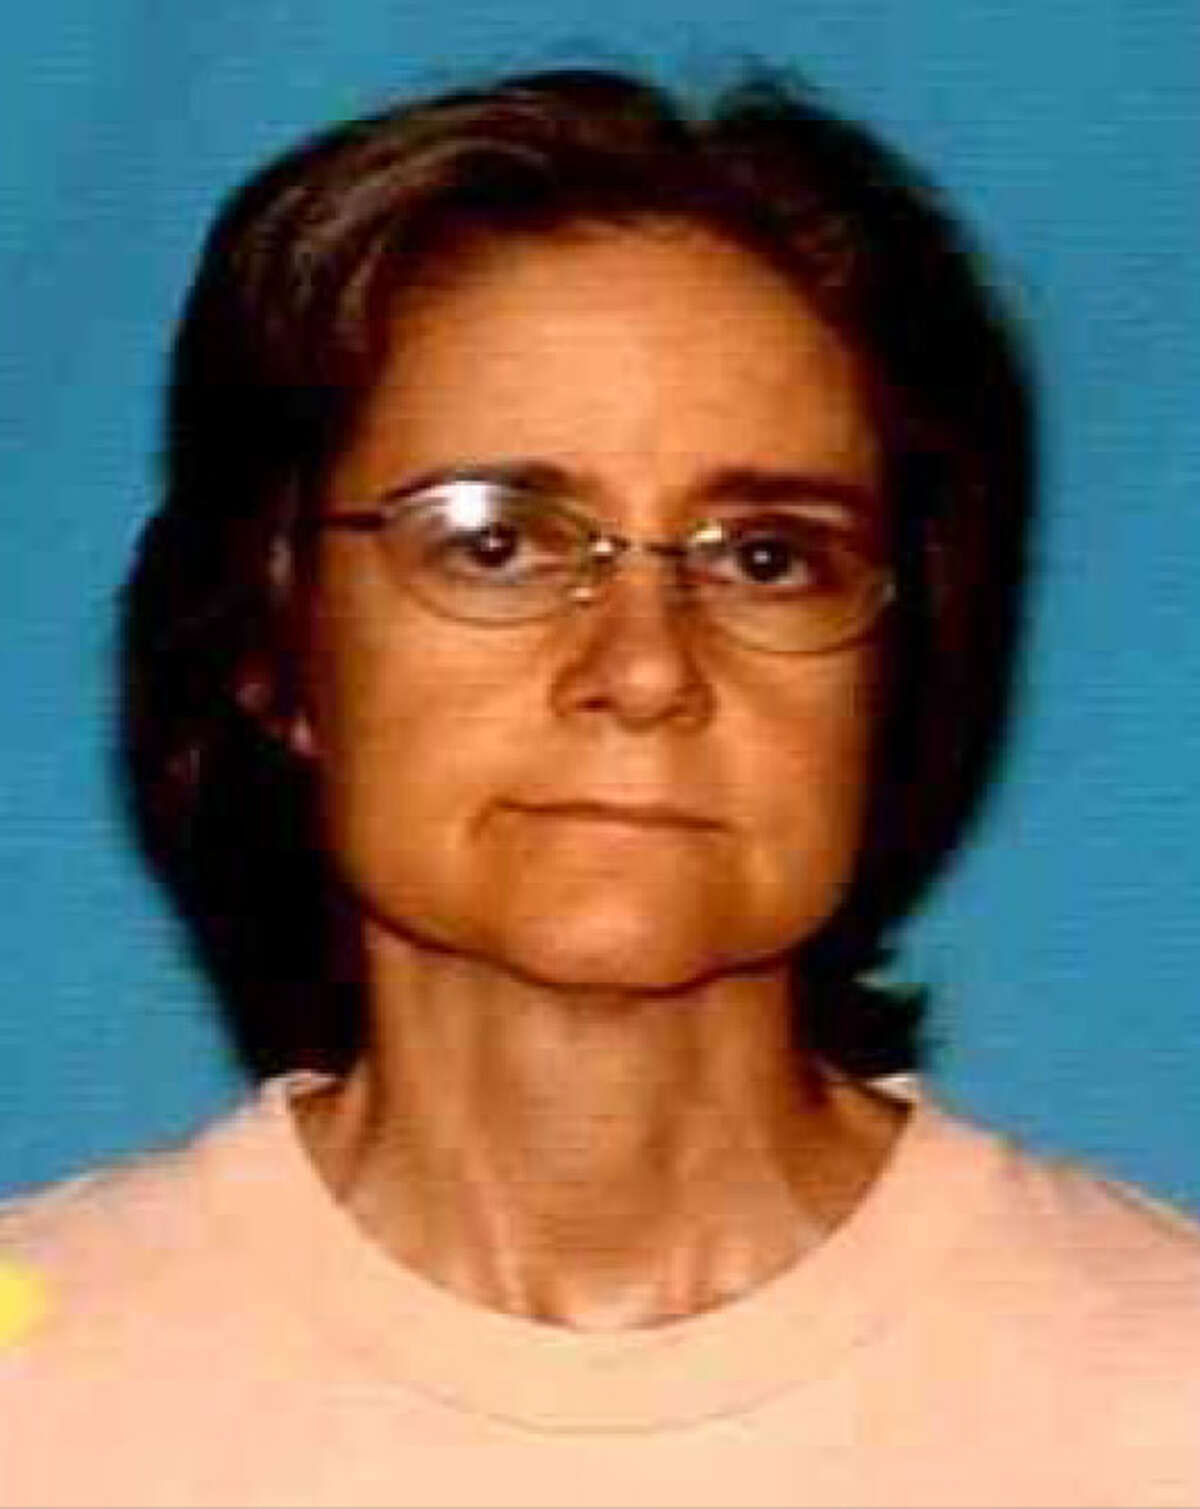 The picture of Mary Cerruti that was on a Houston Police Department Missing Persons Unit flyer in 2015. Cerruti had last been seen in the spring of 2015. (Photo courtesy Houston Police Department)